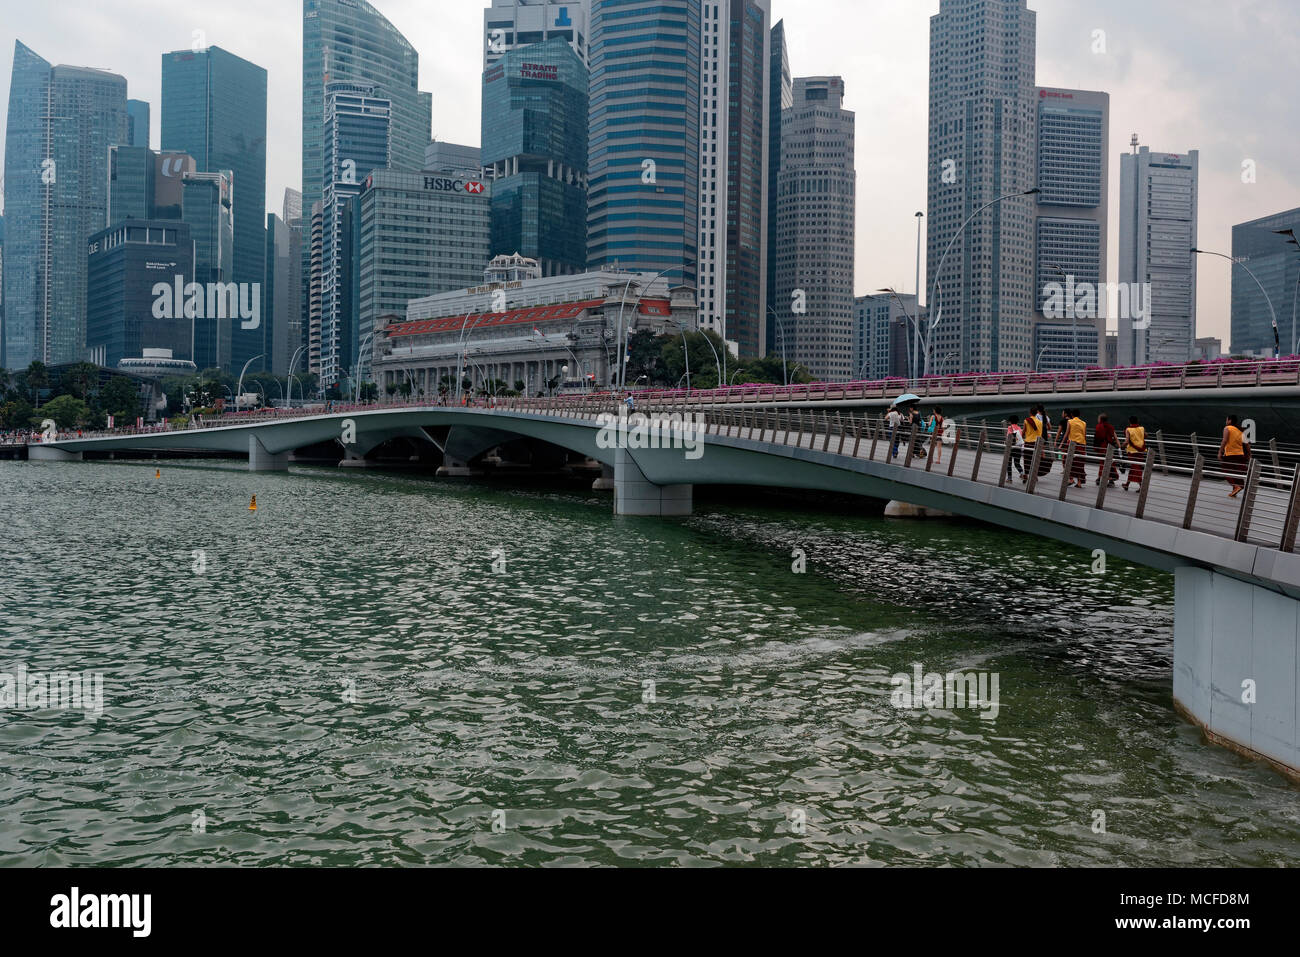 The Jubilee Bridge in Singapore linking the Merlion and the Esplanade in Marina Bay - Stock Image